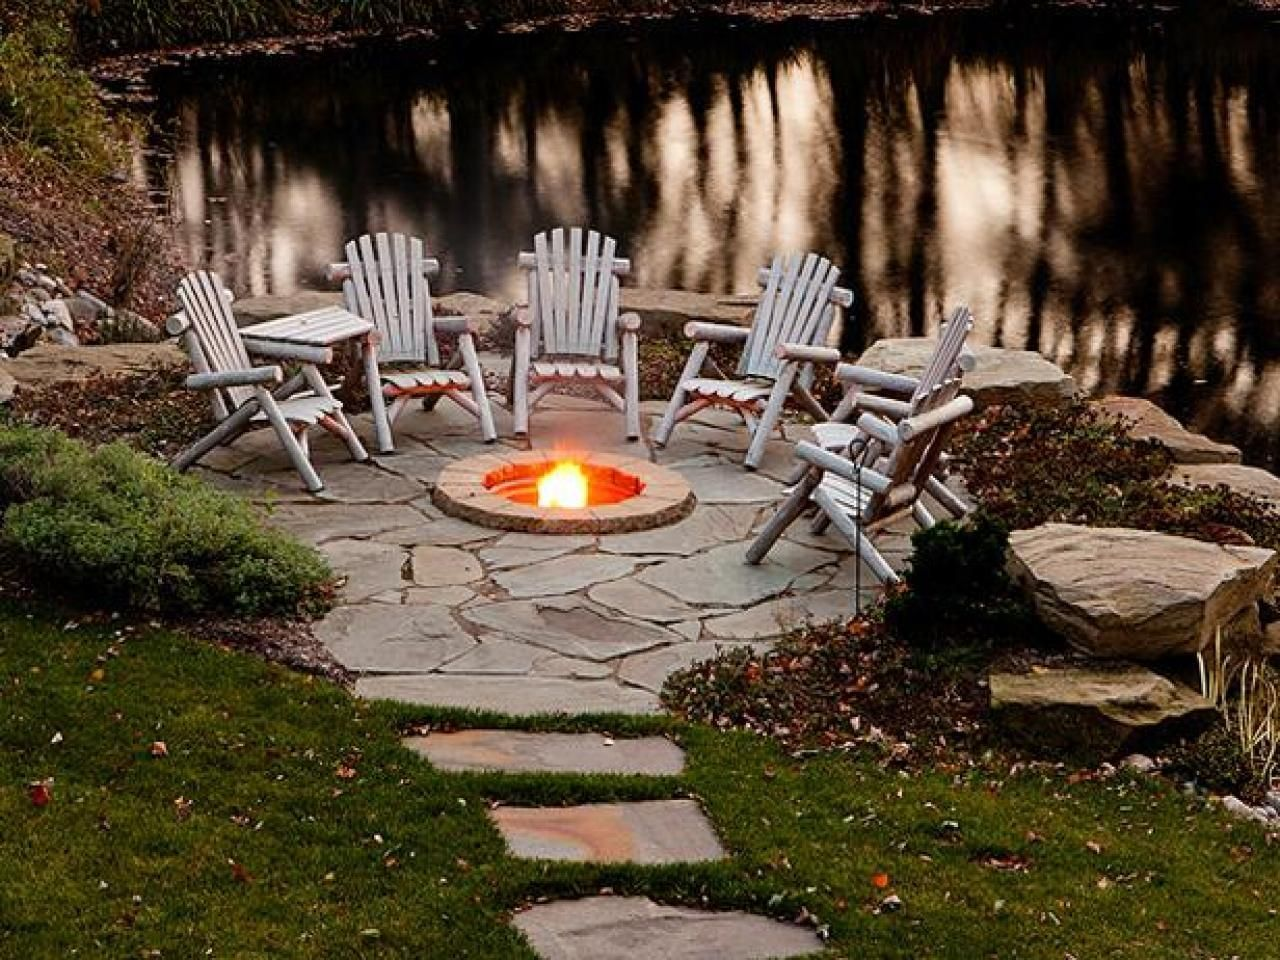 18+ Unbelievable Stone Fire Pit Raised Beds Ideas in 2019 ... on outdoor furniture with fire pits, decks with fire pits, outdoor kitchen with fire pits, unique patio fire pits, swimming pools with fire pits, backyard patio with fire pits, gas fire pits, retaining walls with fire pits, water features with fire pits, gardens with fire pits,